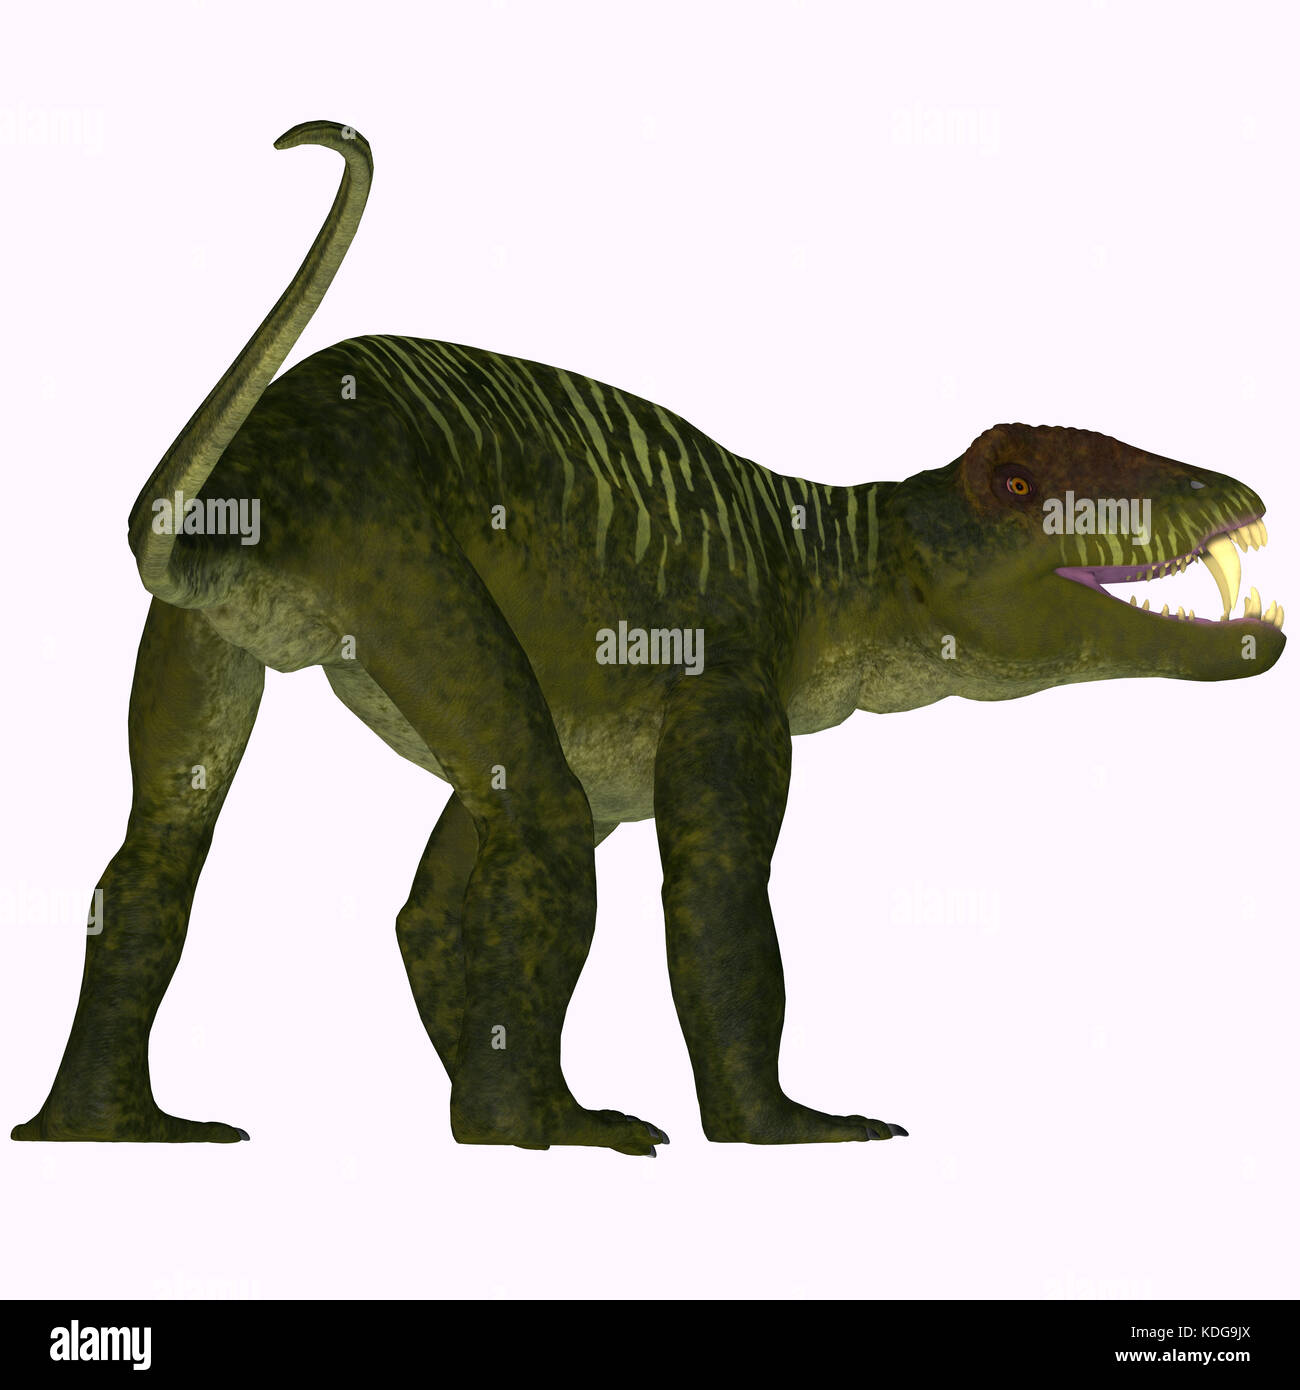 Doliosauriscus Dinosaur Tail - Doliosauriscus is an extinct genus of therapsid carnivorous dinosaur that lived in - Stock Image